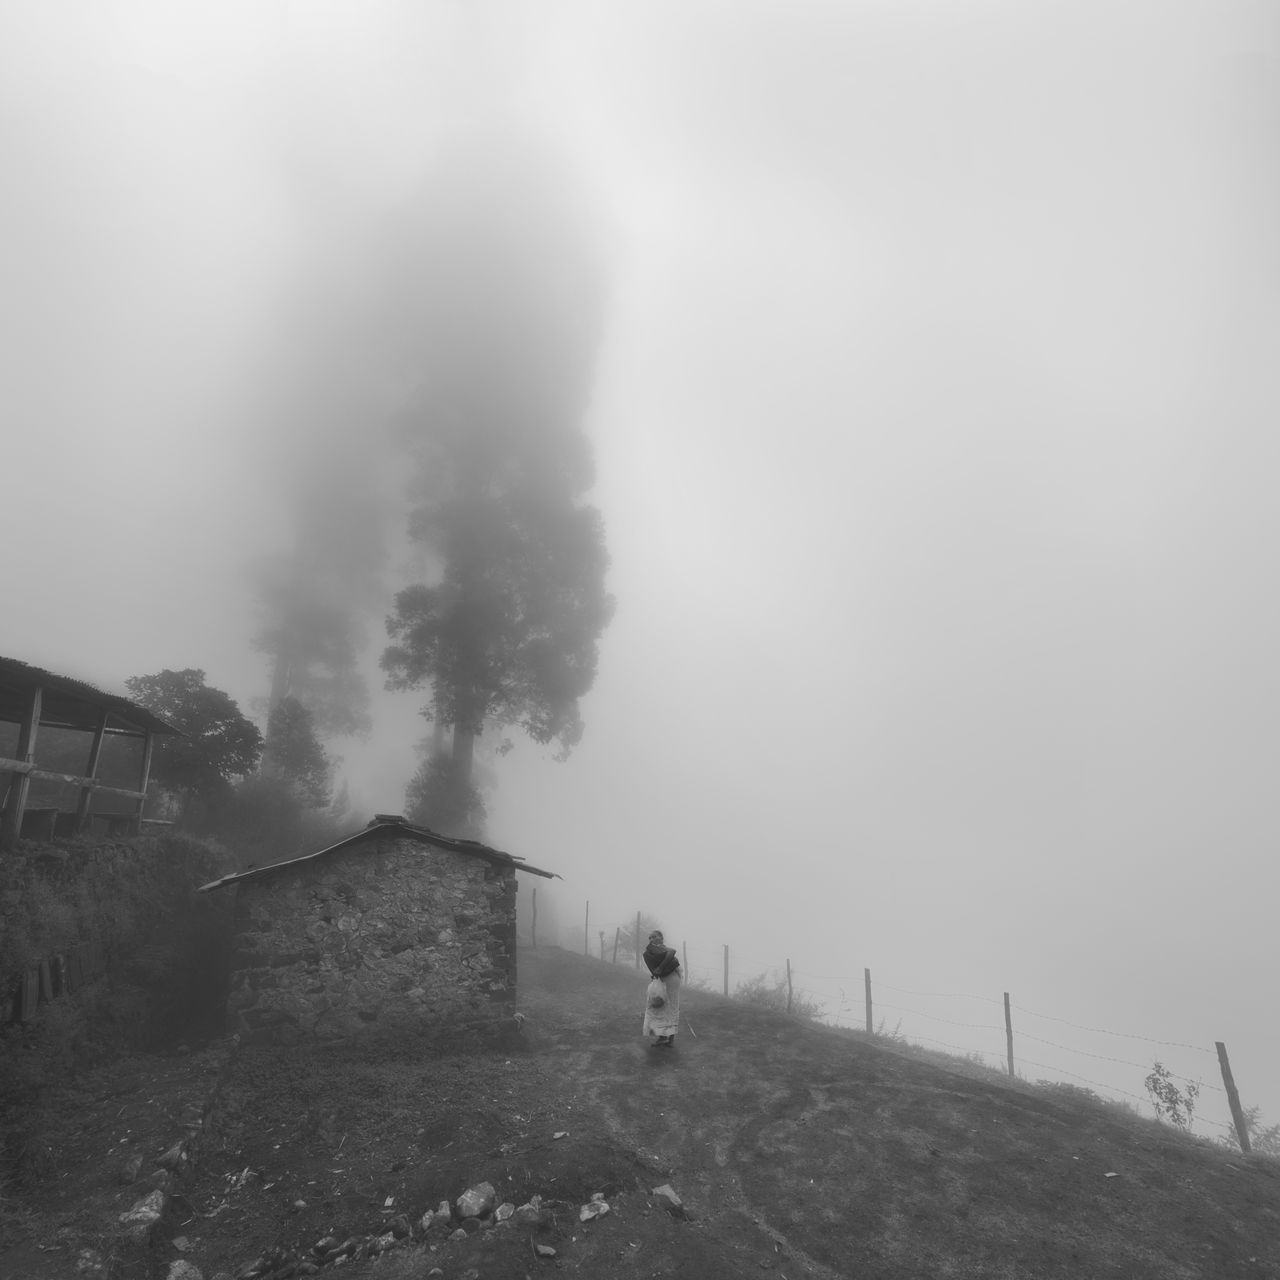 An old lady walking towards her home at the hill top area of kodaikanal on a misty afternoon. Atmospheric Mood Fog Foggy Hill Houses India Kodaikanal Lady Local Mist Monochrome My Winter Favorites Nature Old Age Old Lady Tamilnadu Travel Trees Walking Weather